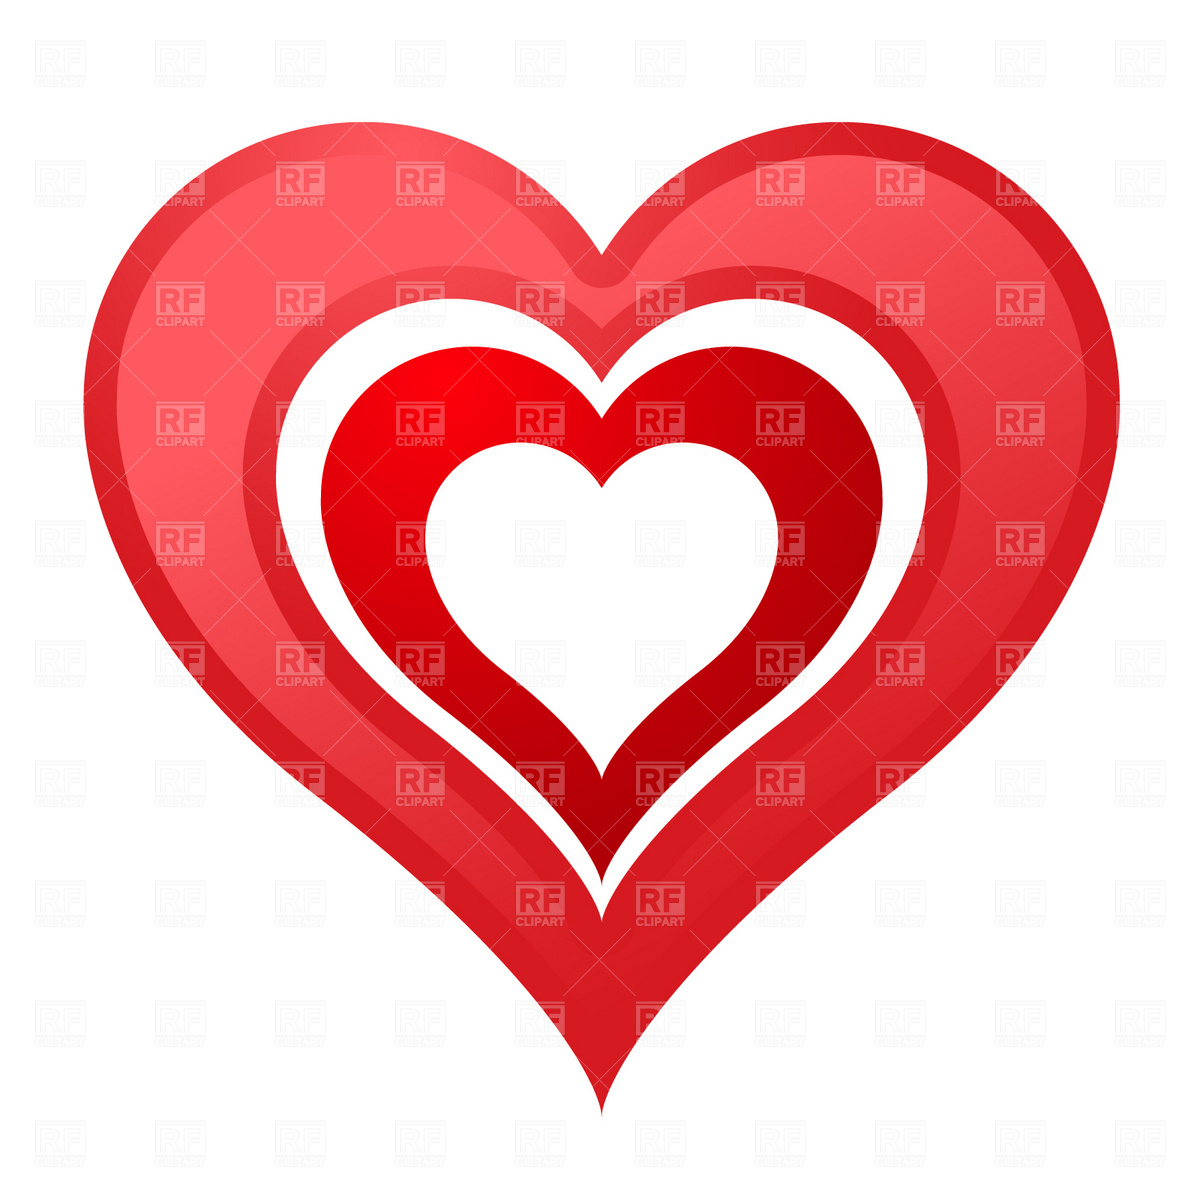 Royalty free clipart heart